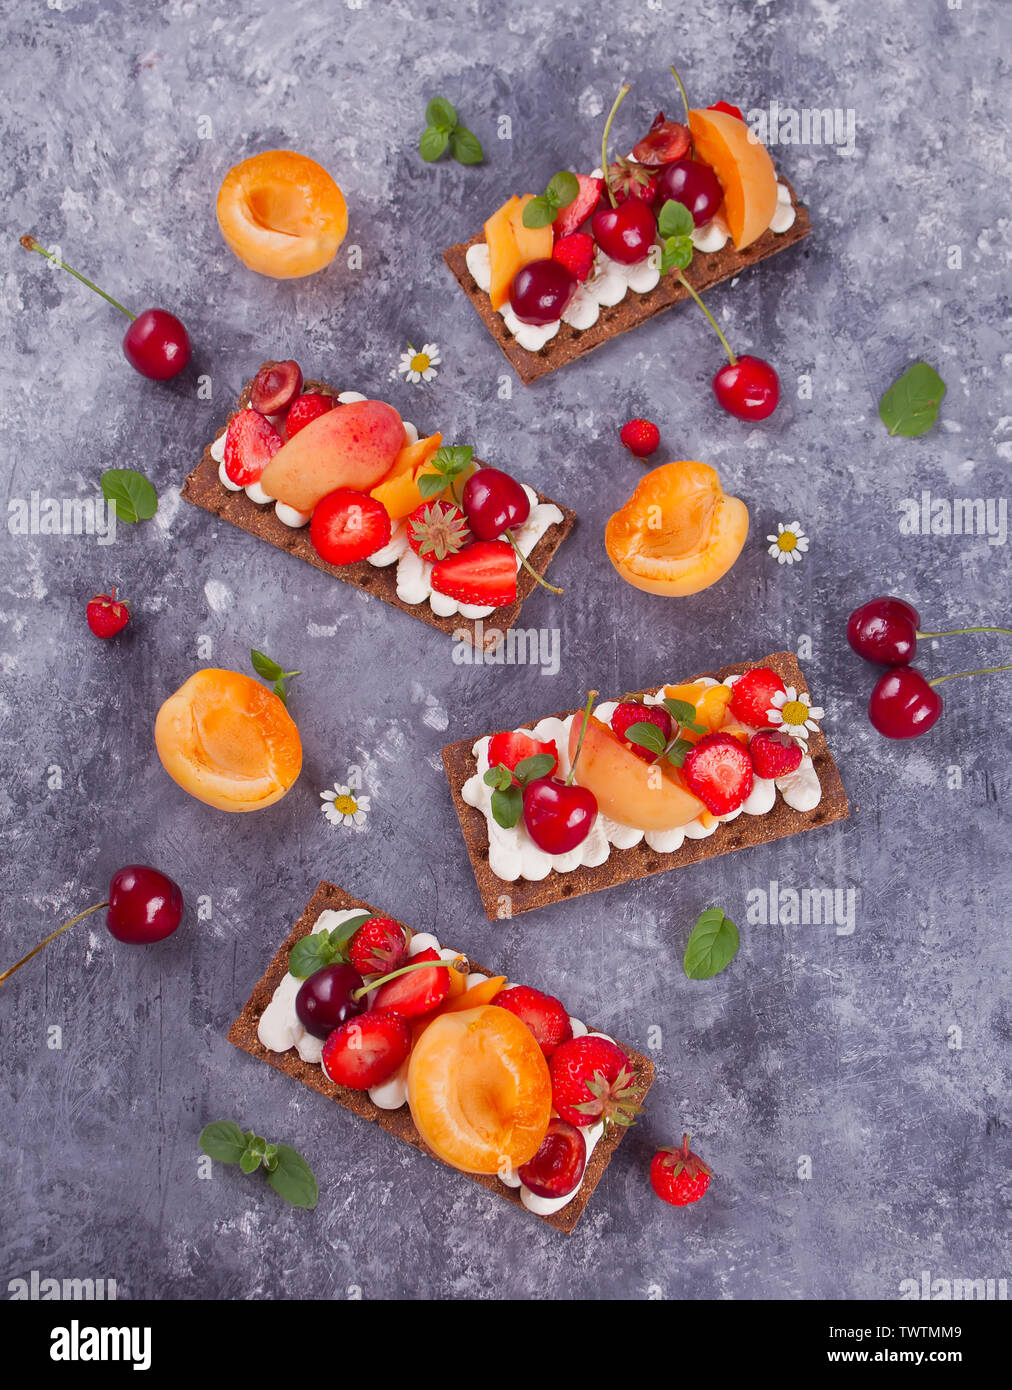 Crisp fitness health bread with creme cheese, fruit and berries on the gray concrete background. Top view. - Stock Image